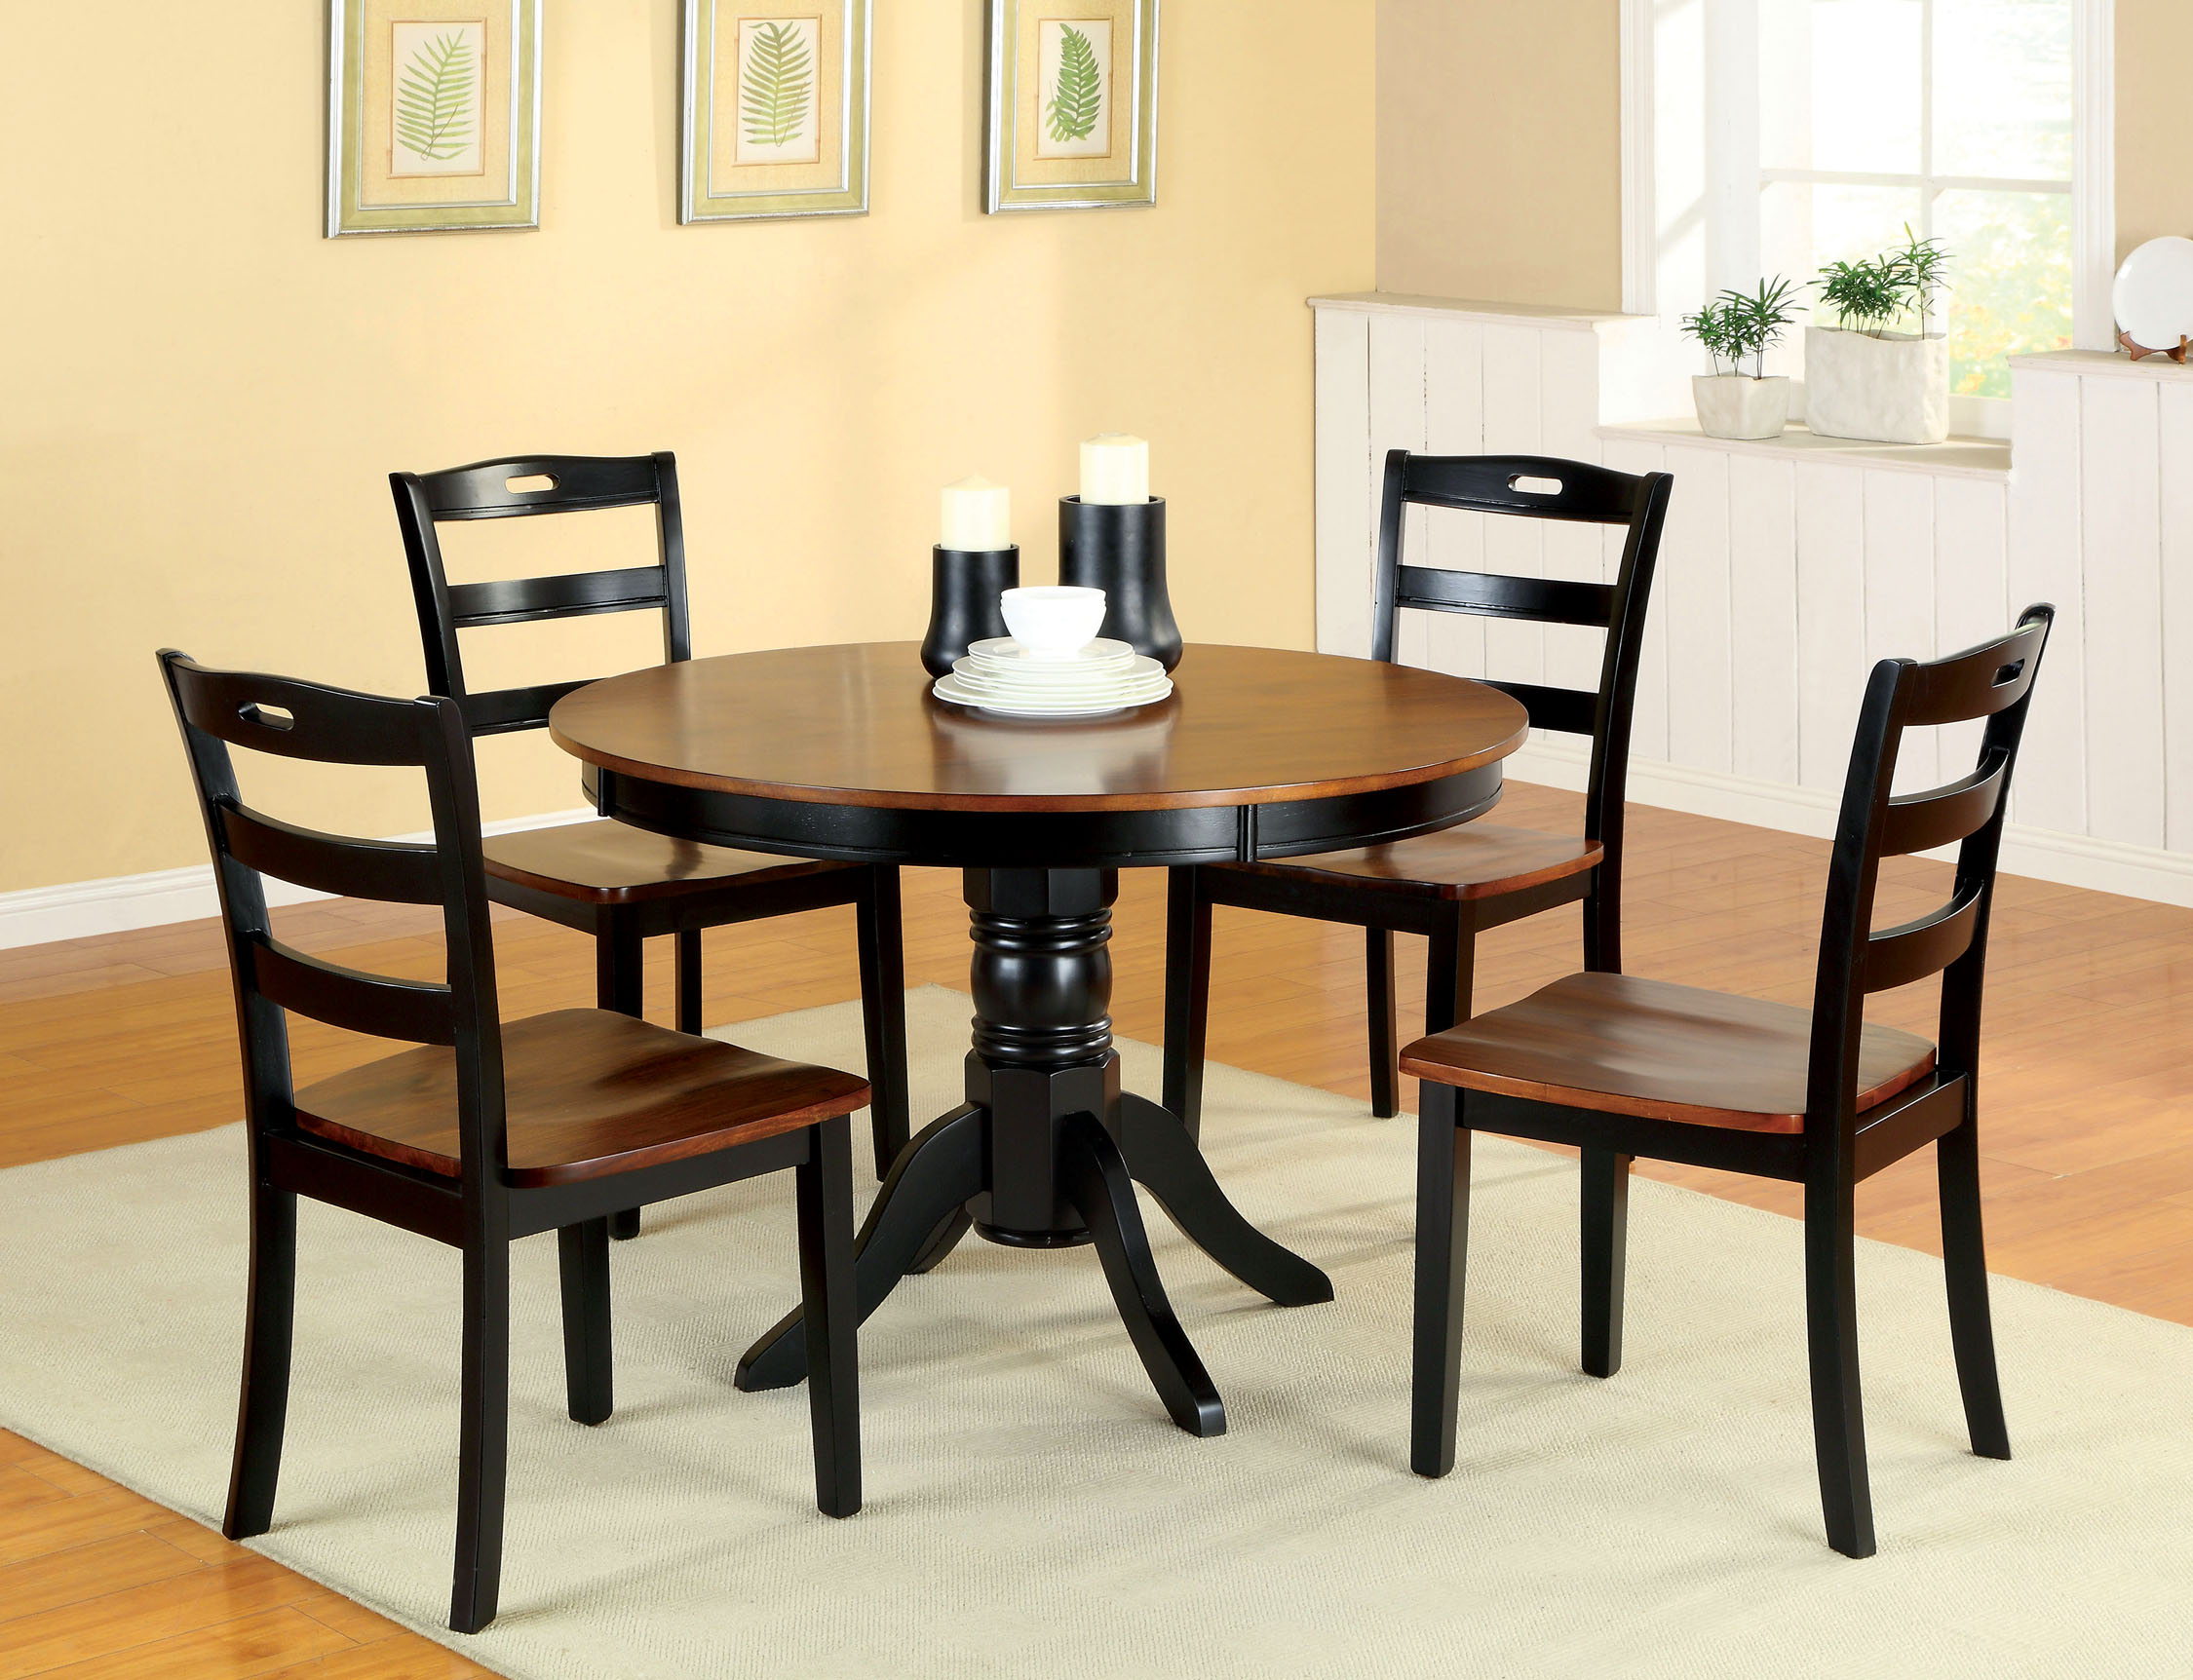 p P two tone kitchen table Furniture of America Harthas 5 Piece Two Tone Round Dining Set Home Furniture Dining Kitchen Furniture Dining Sets Collections